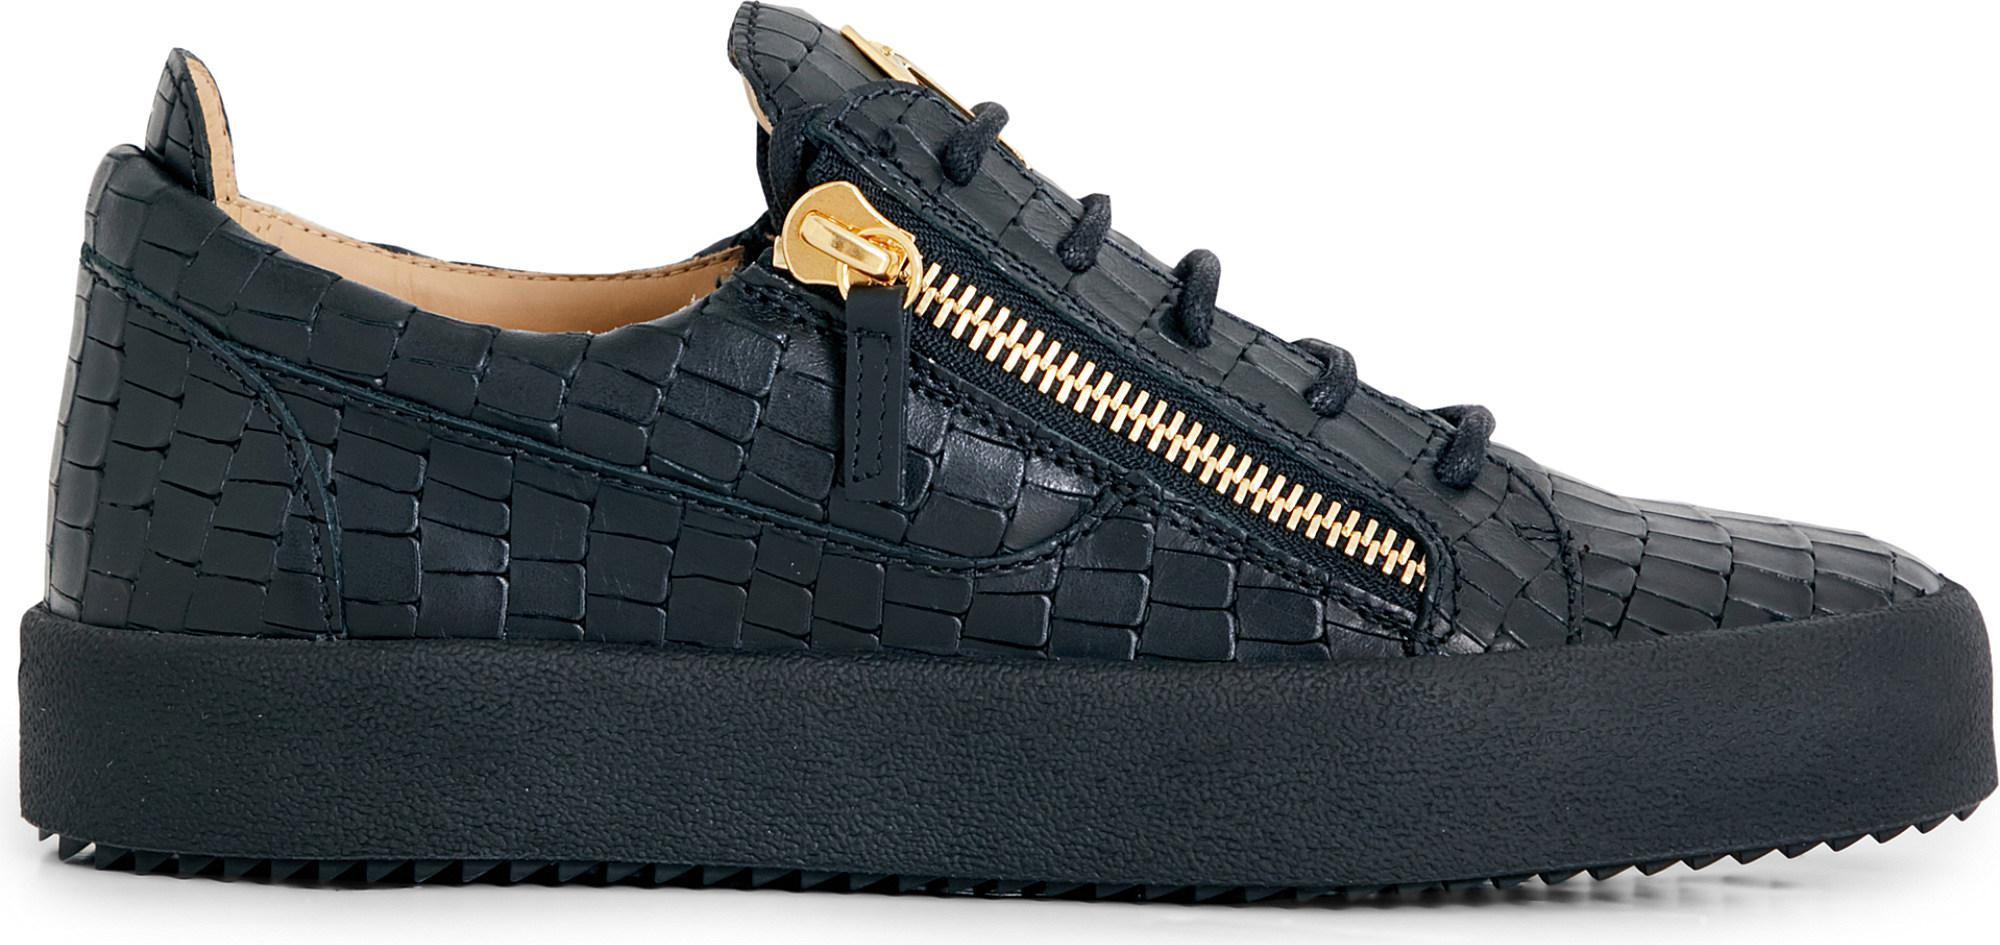 23cc84cd1f Lyst - Giuseppe Zanotti Croc-effect Leather Trainers in Black for Men